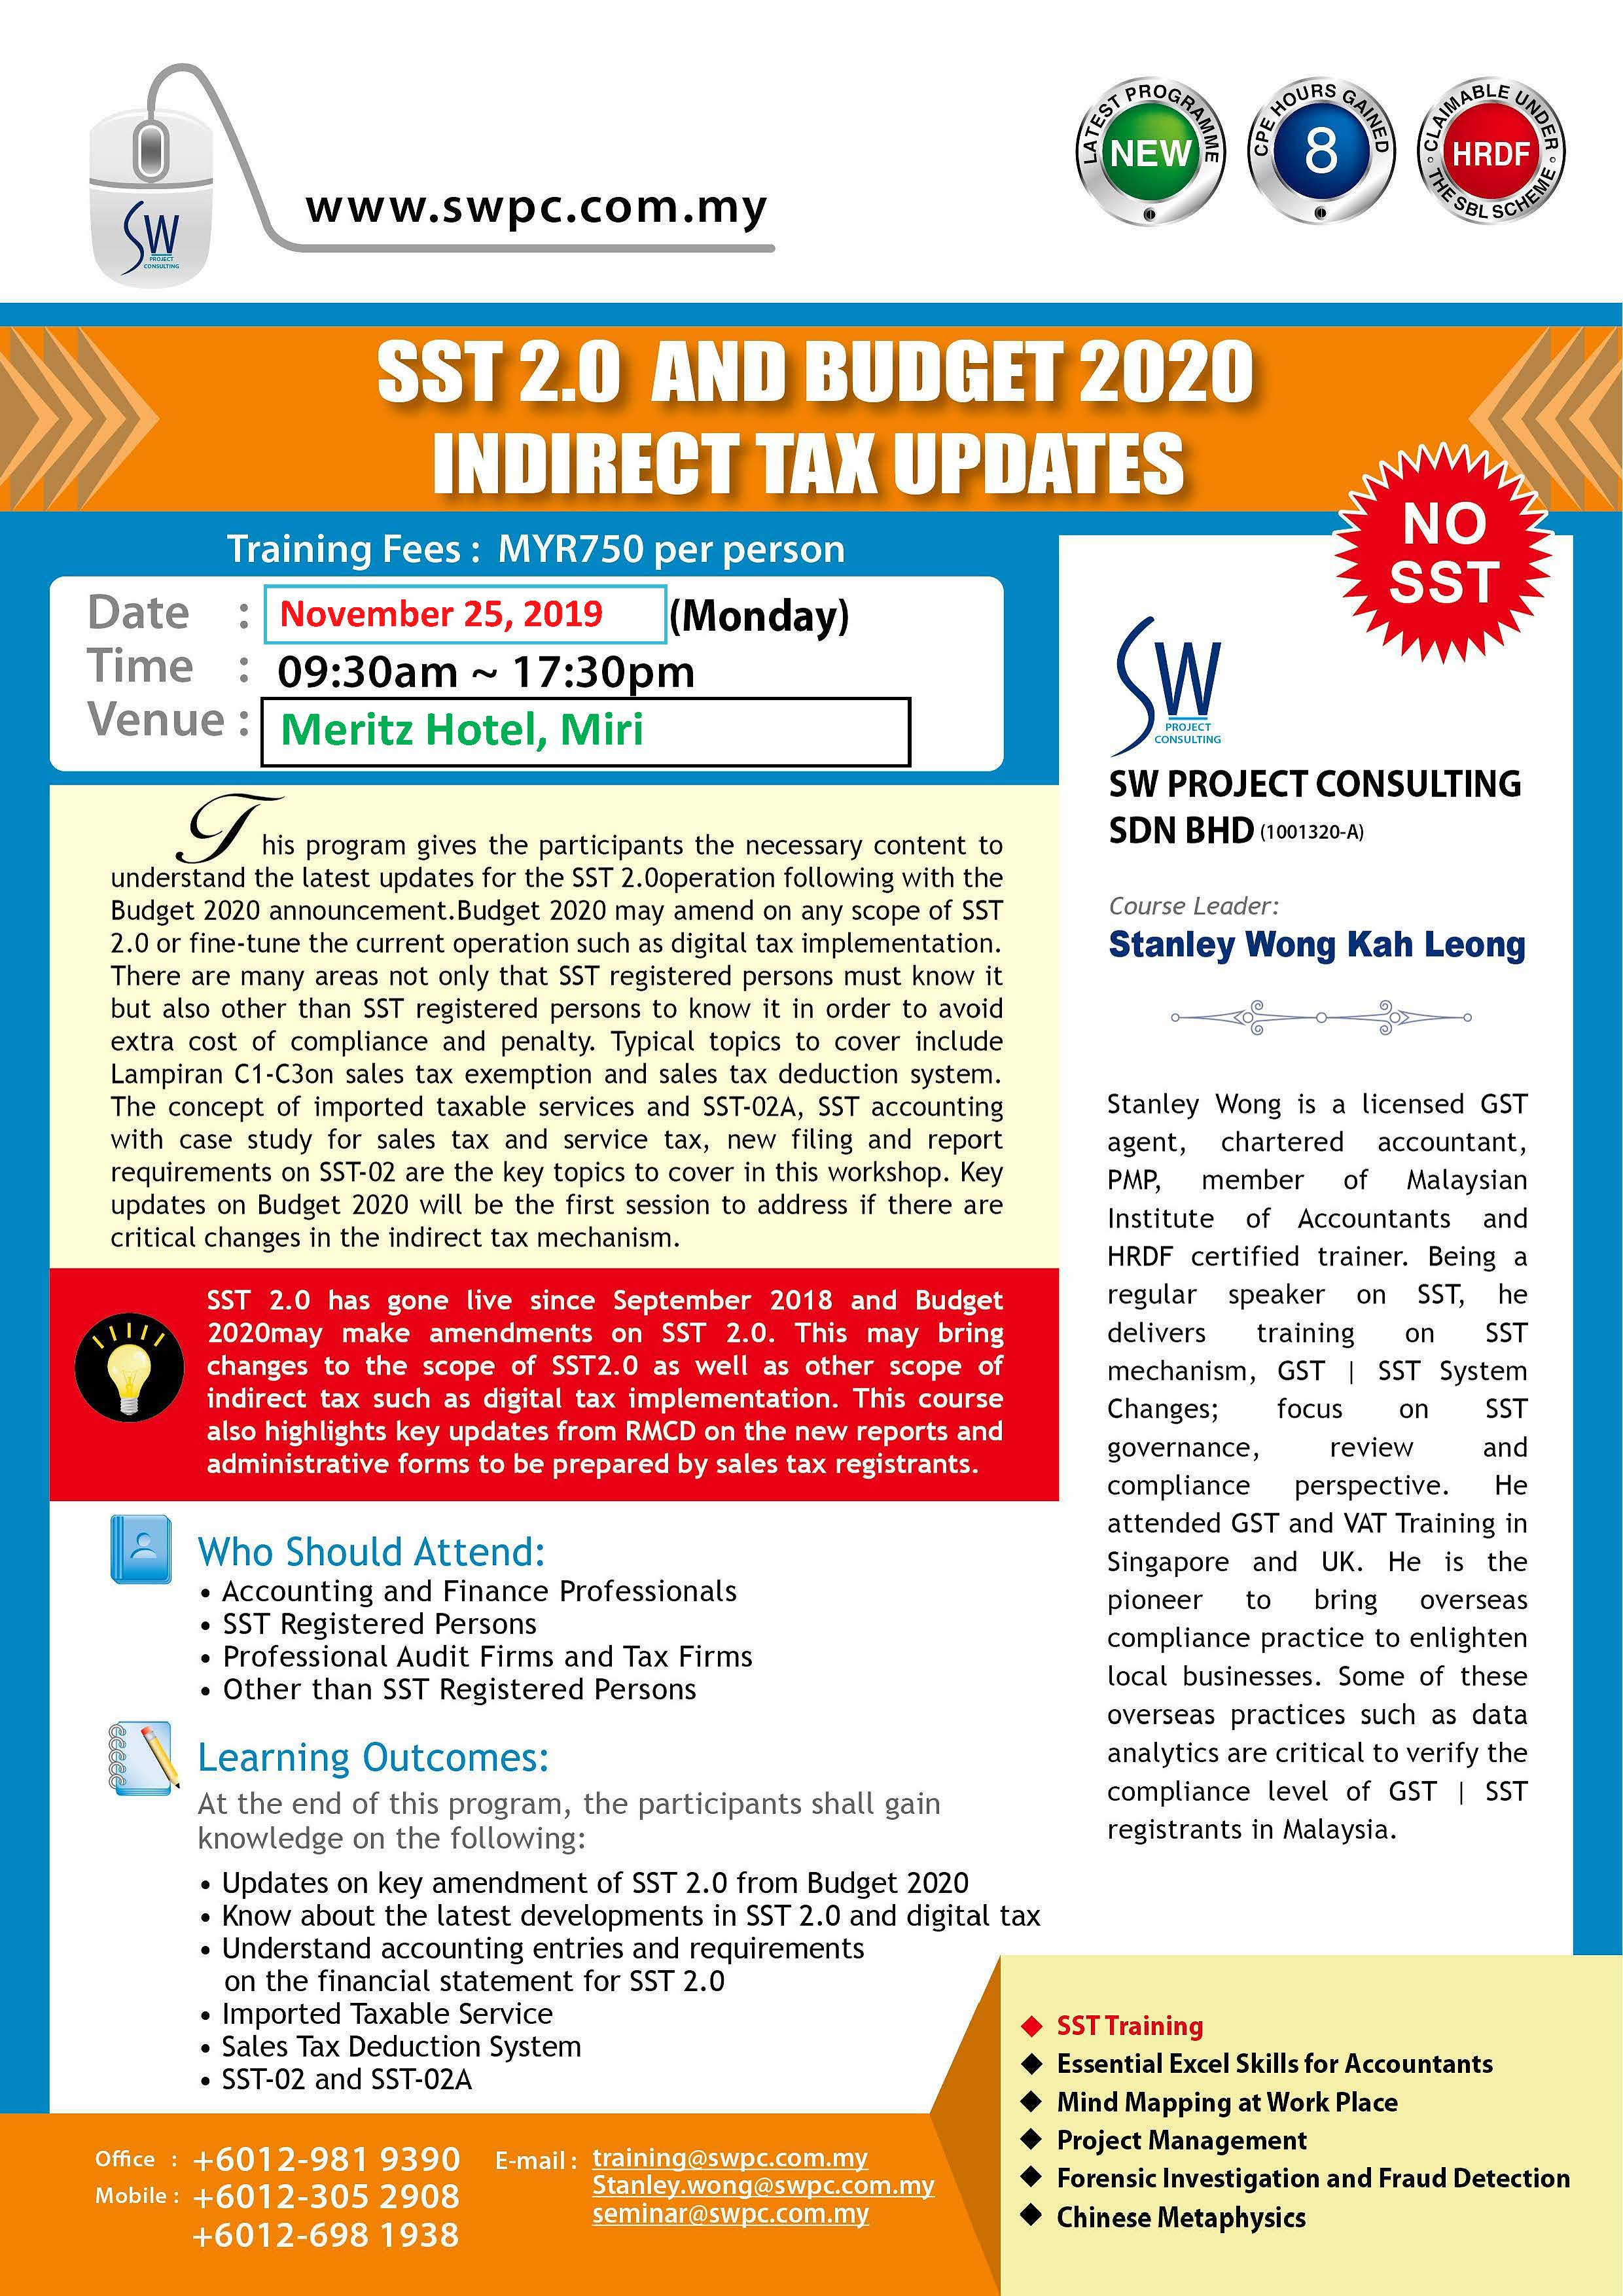 SST 2.0 and Budget 2020 Indirect Tax Updates